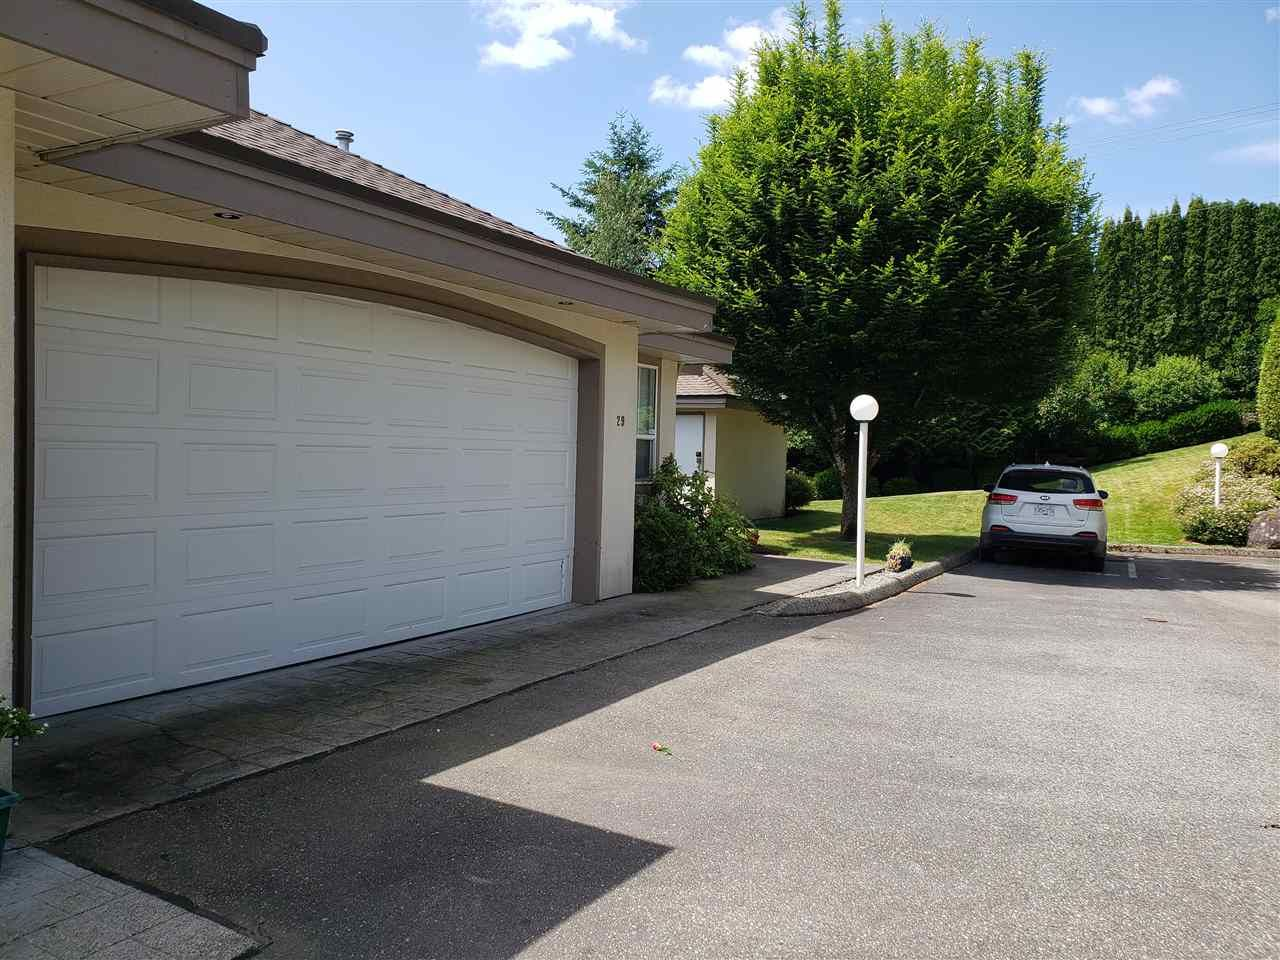 """Main Photo: 29 3354 HORN Street in Abbotsford: Central Abbotsford Townhouse for sale in """"Blackberry Estates"""" : MLS®# R2585948"""